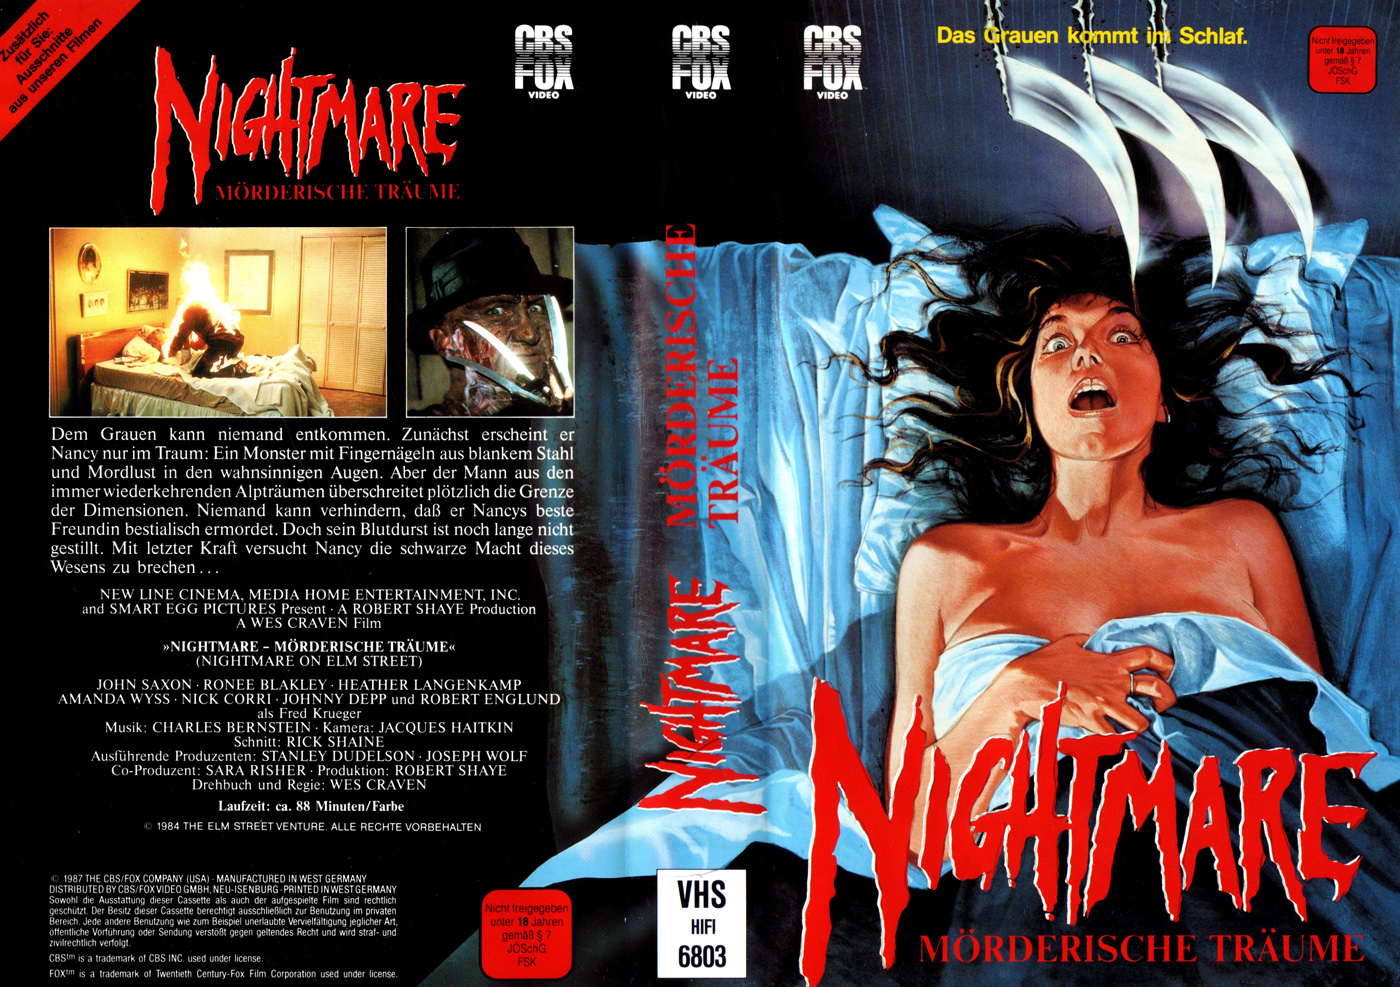 A Nightmare on Elm Street VHS (Germany)